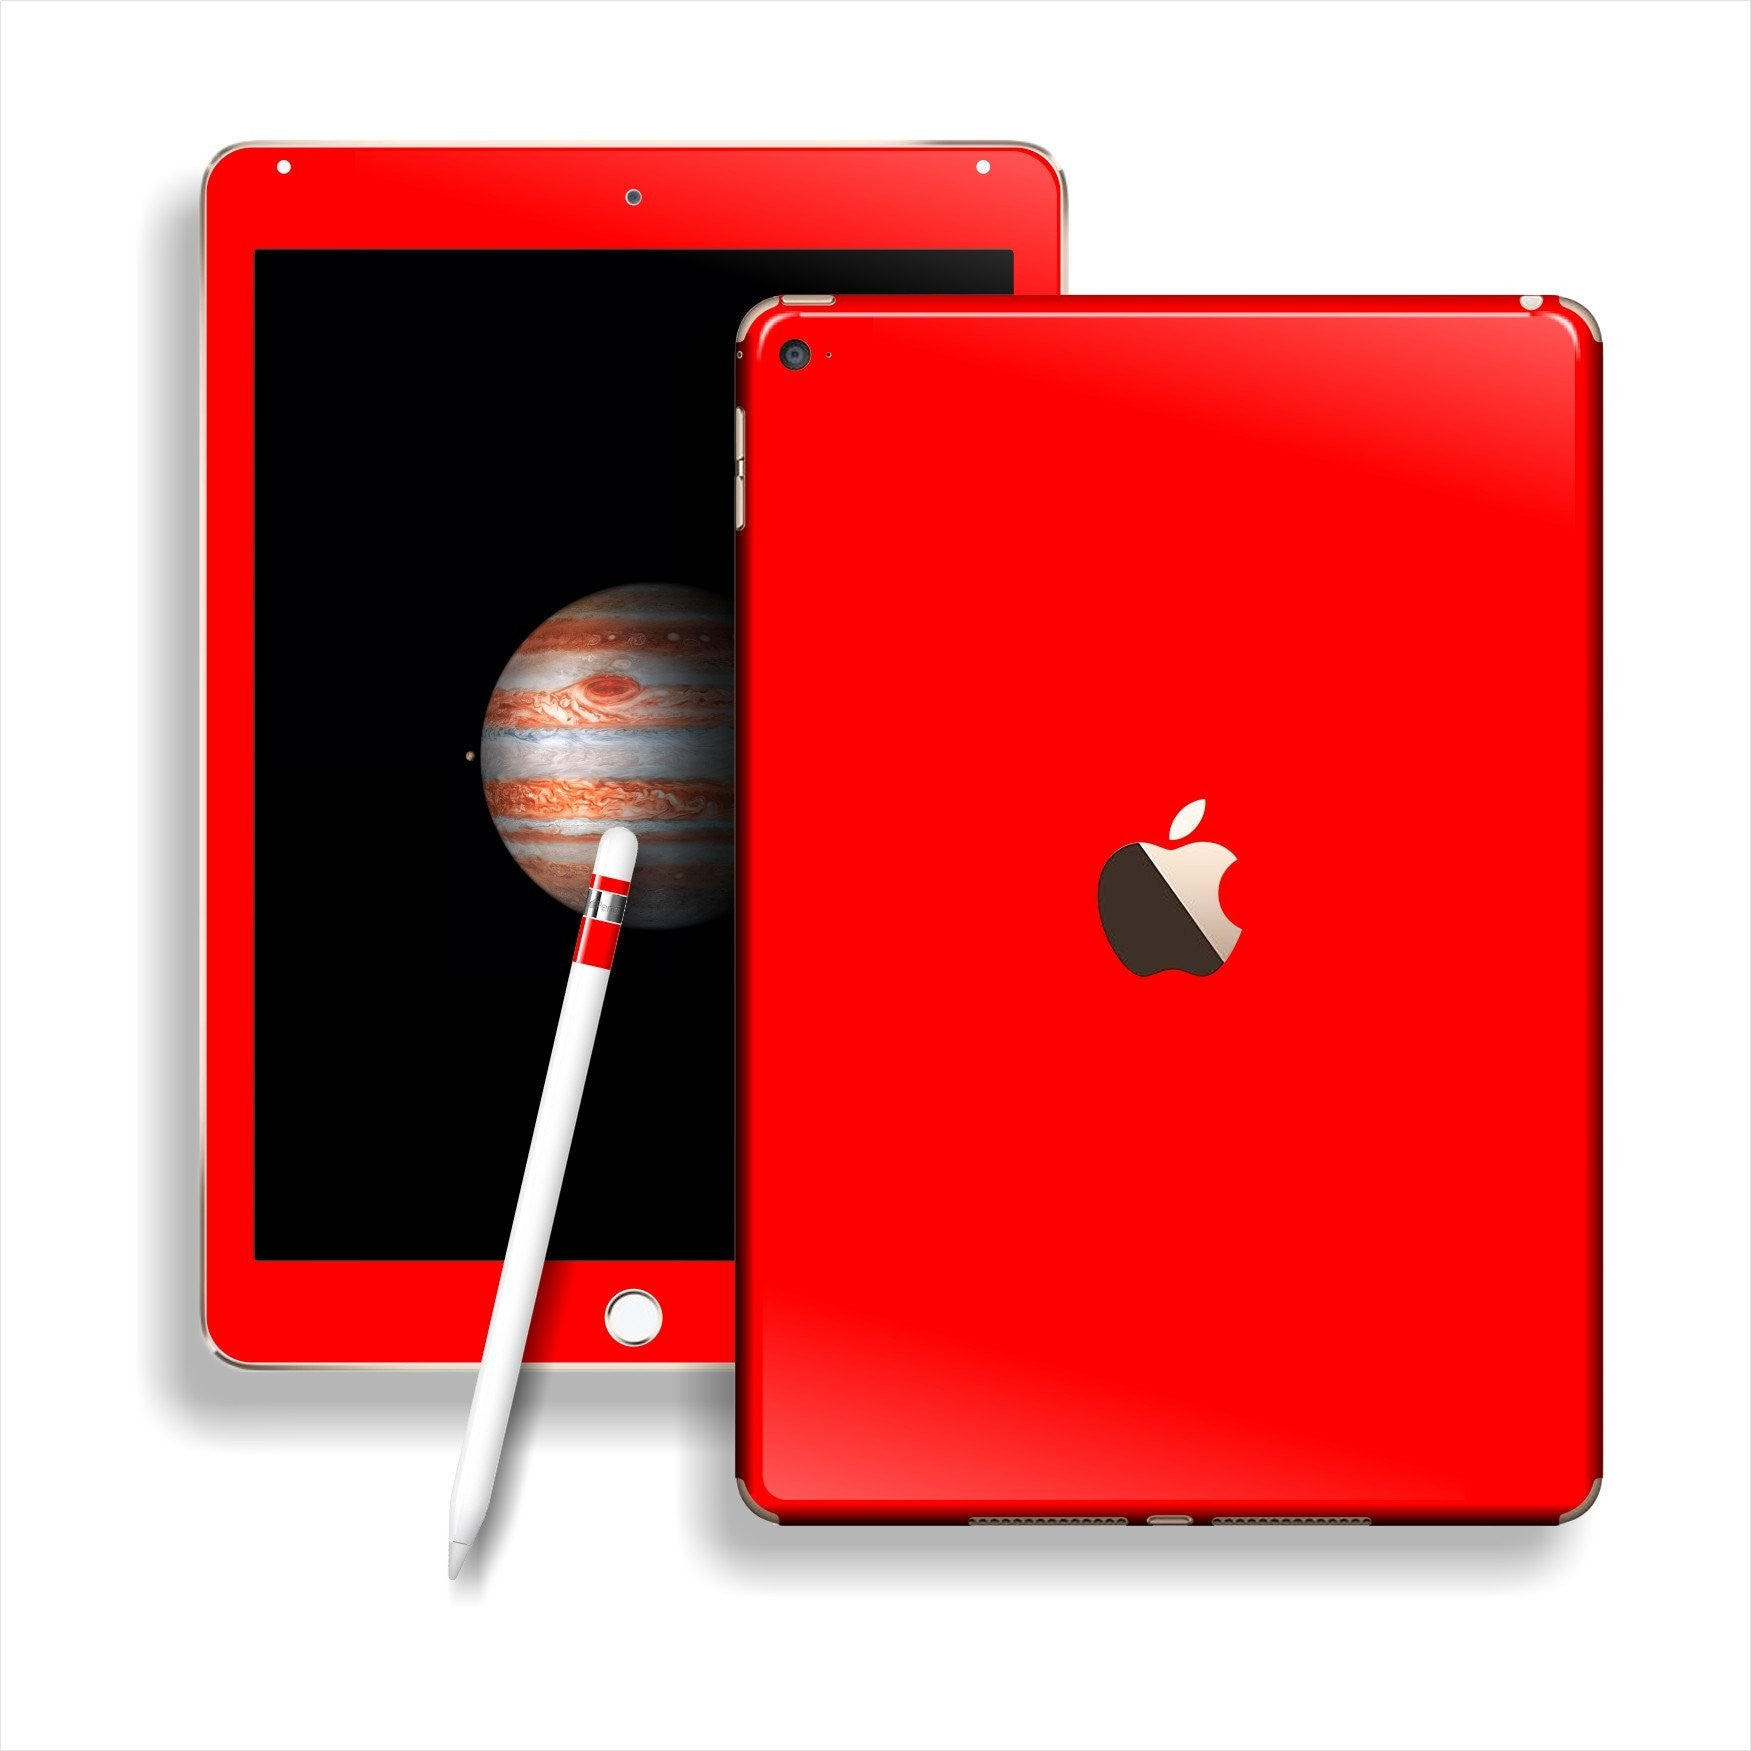 iPad PRO Glossy Bright Red Skin Wrap Sticker Decal Cover Protector by EasySkinz